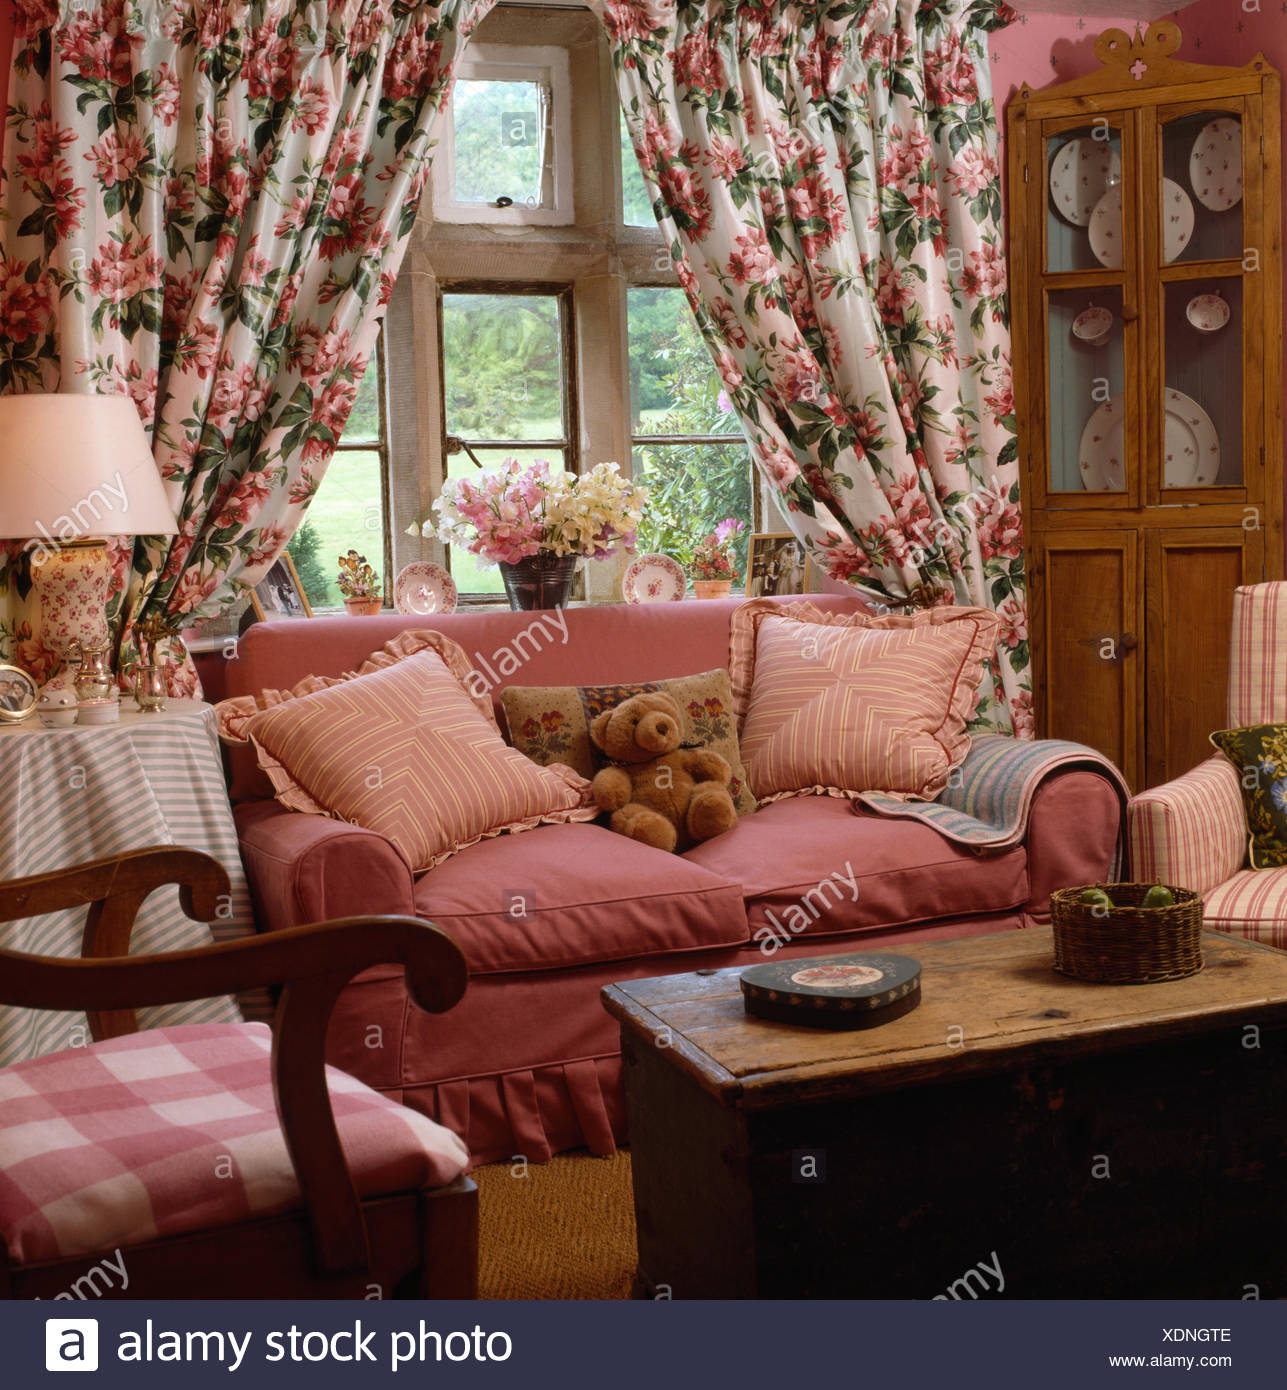 Floral Curtains On Window Behind A Pink Sofa In Country Living Room